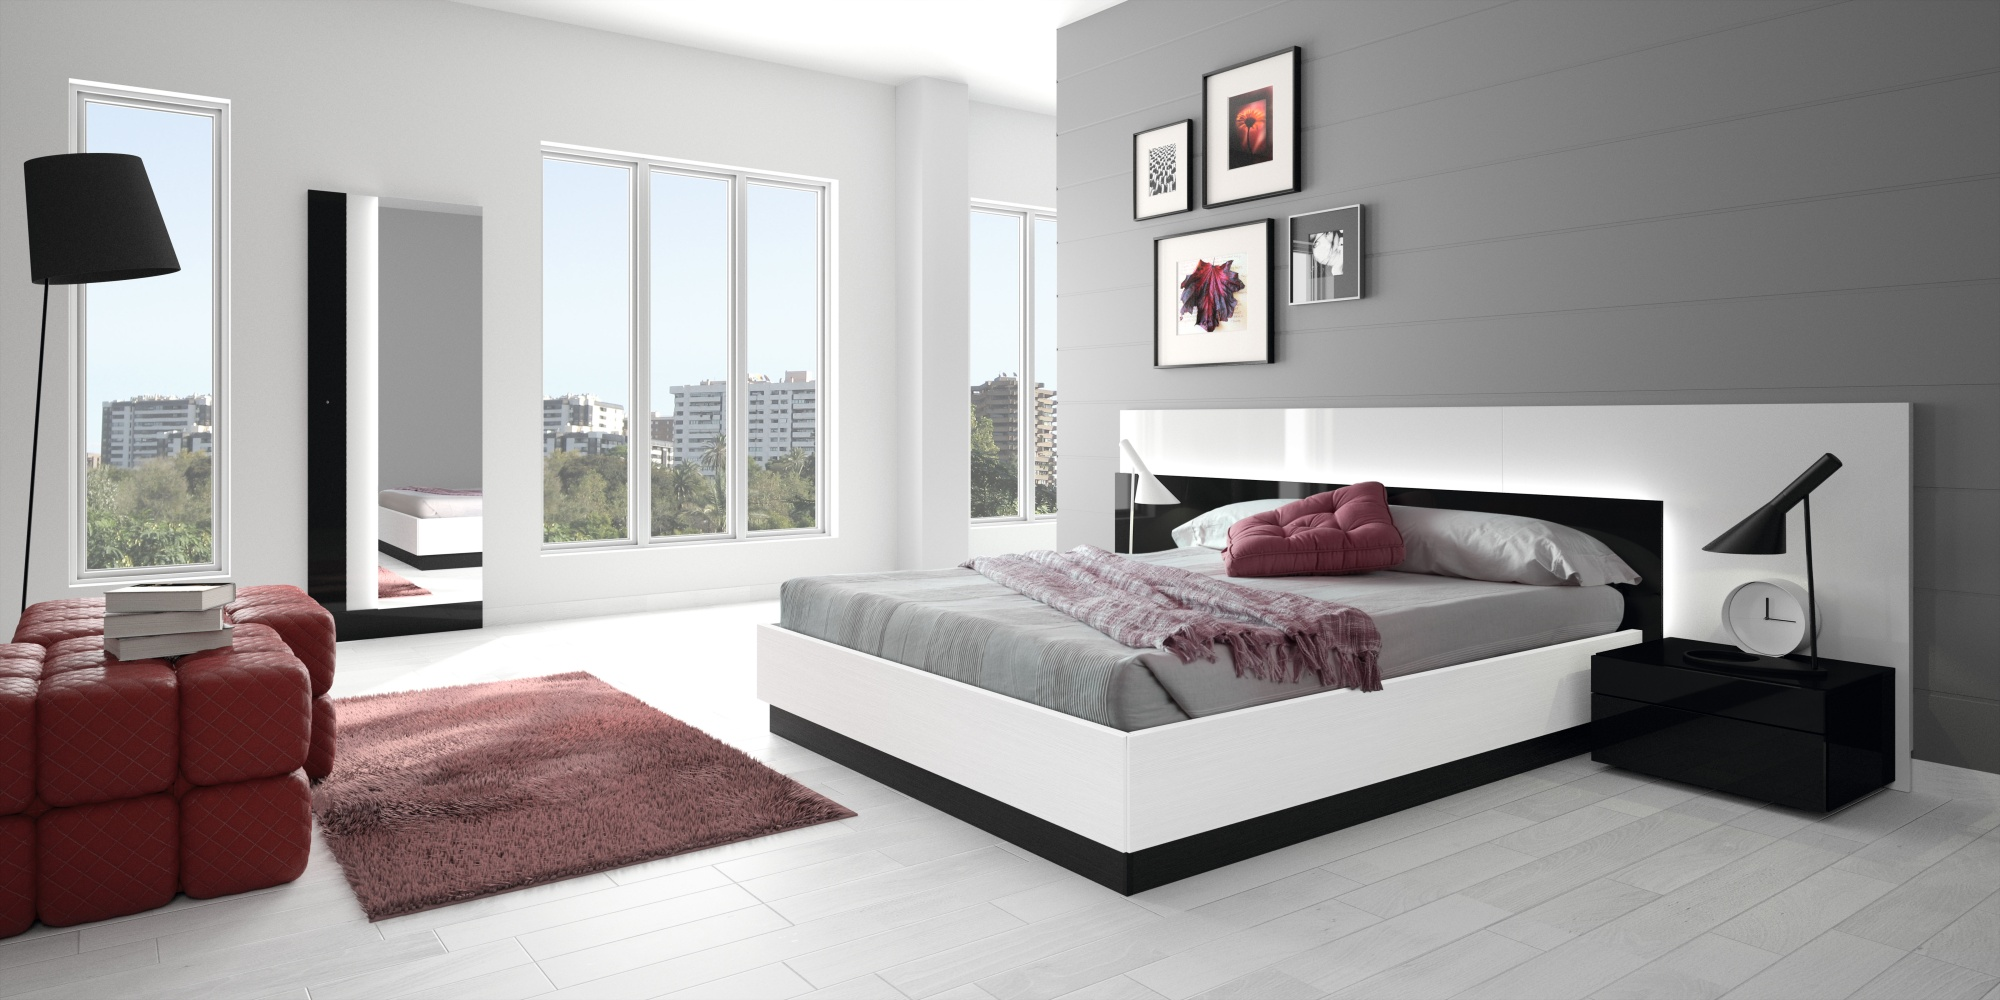 Choosing-Bedroom-furniture-tips-13